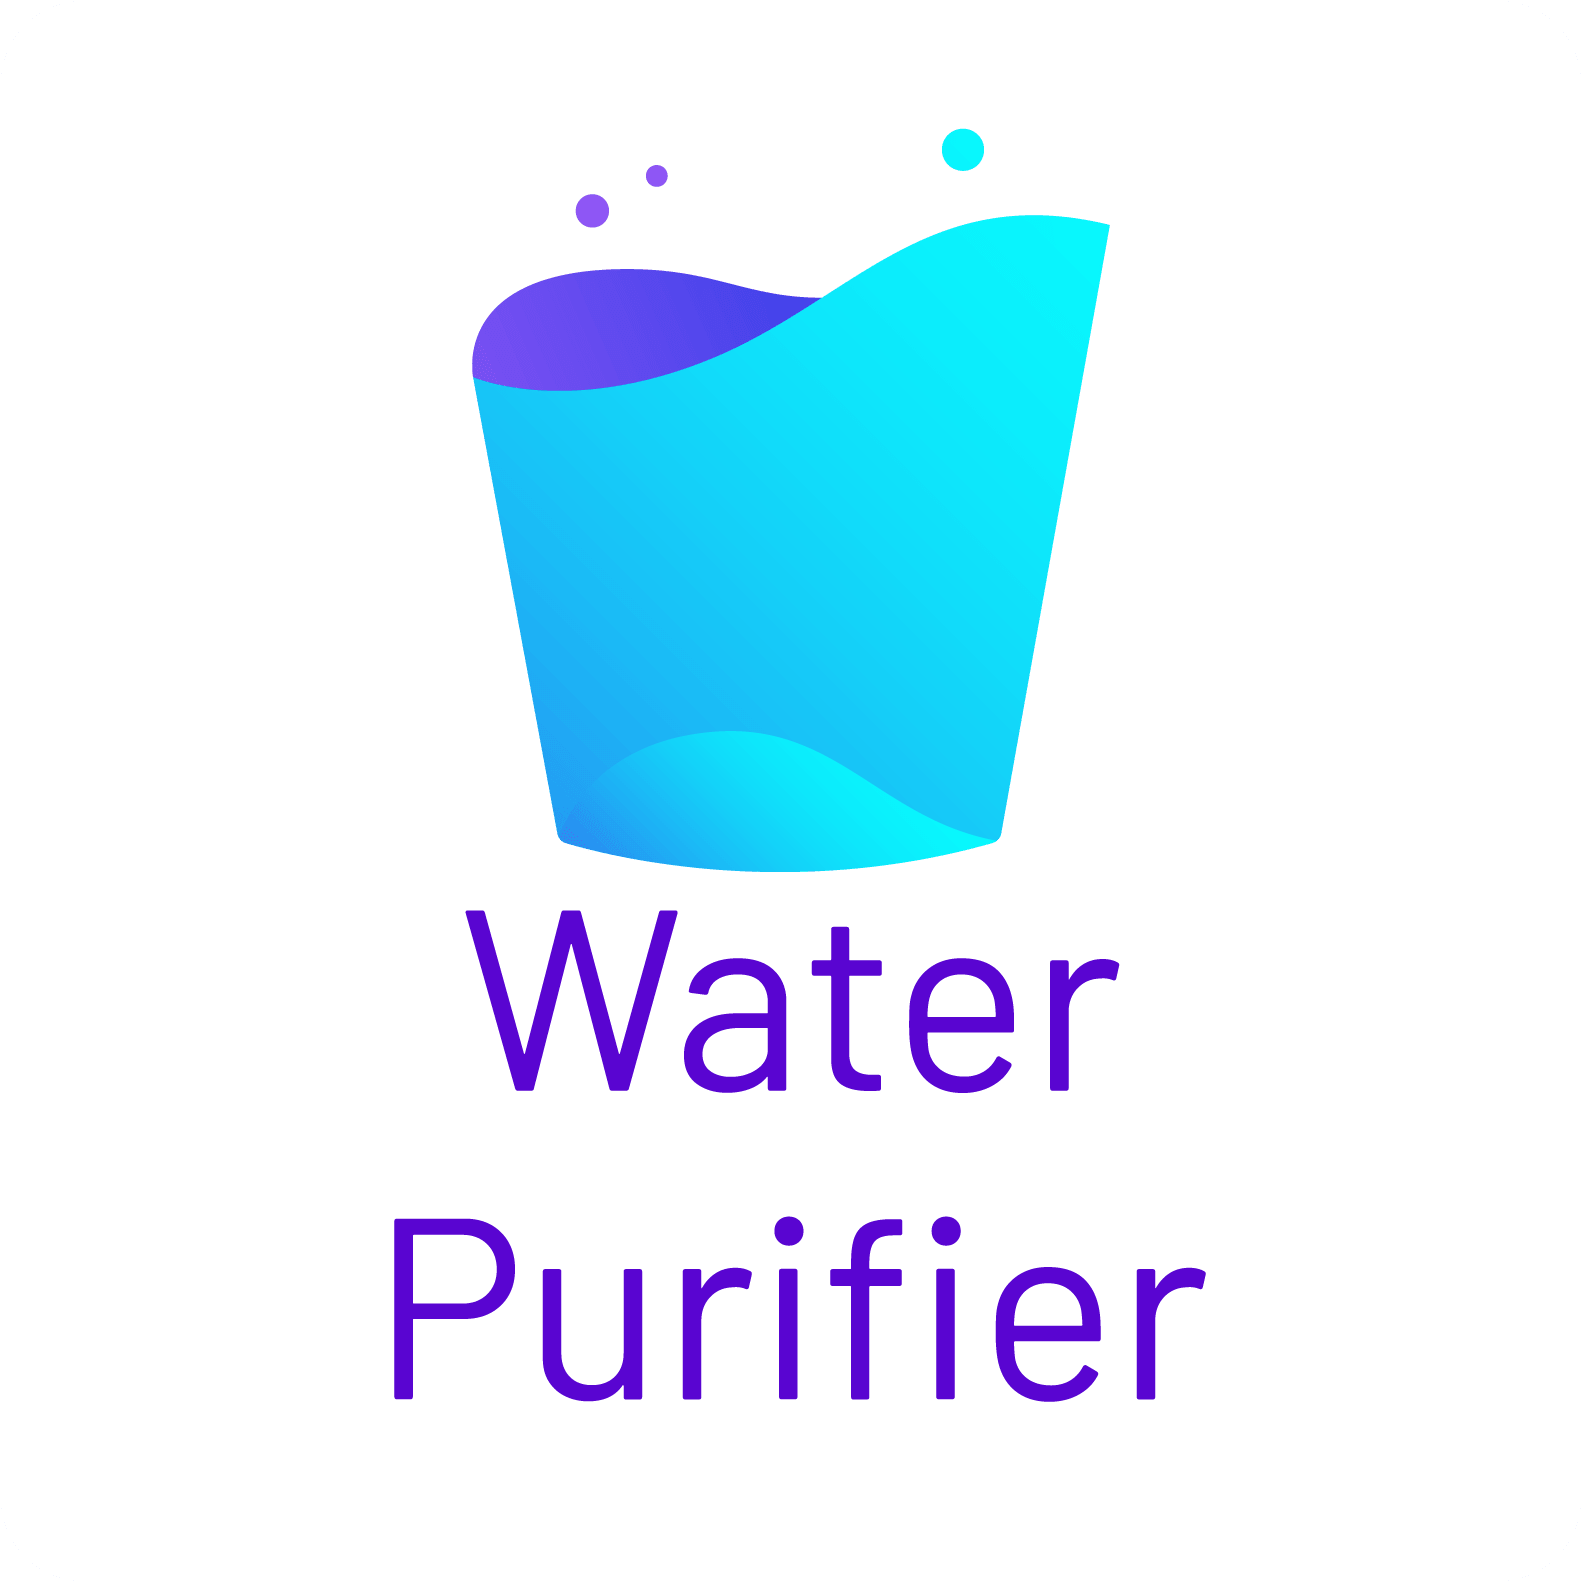 Image for water purifies category